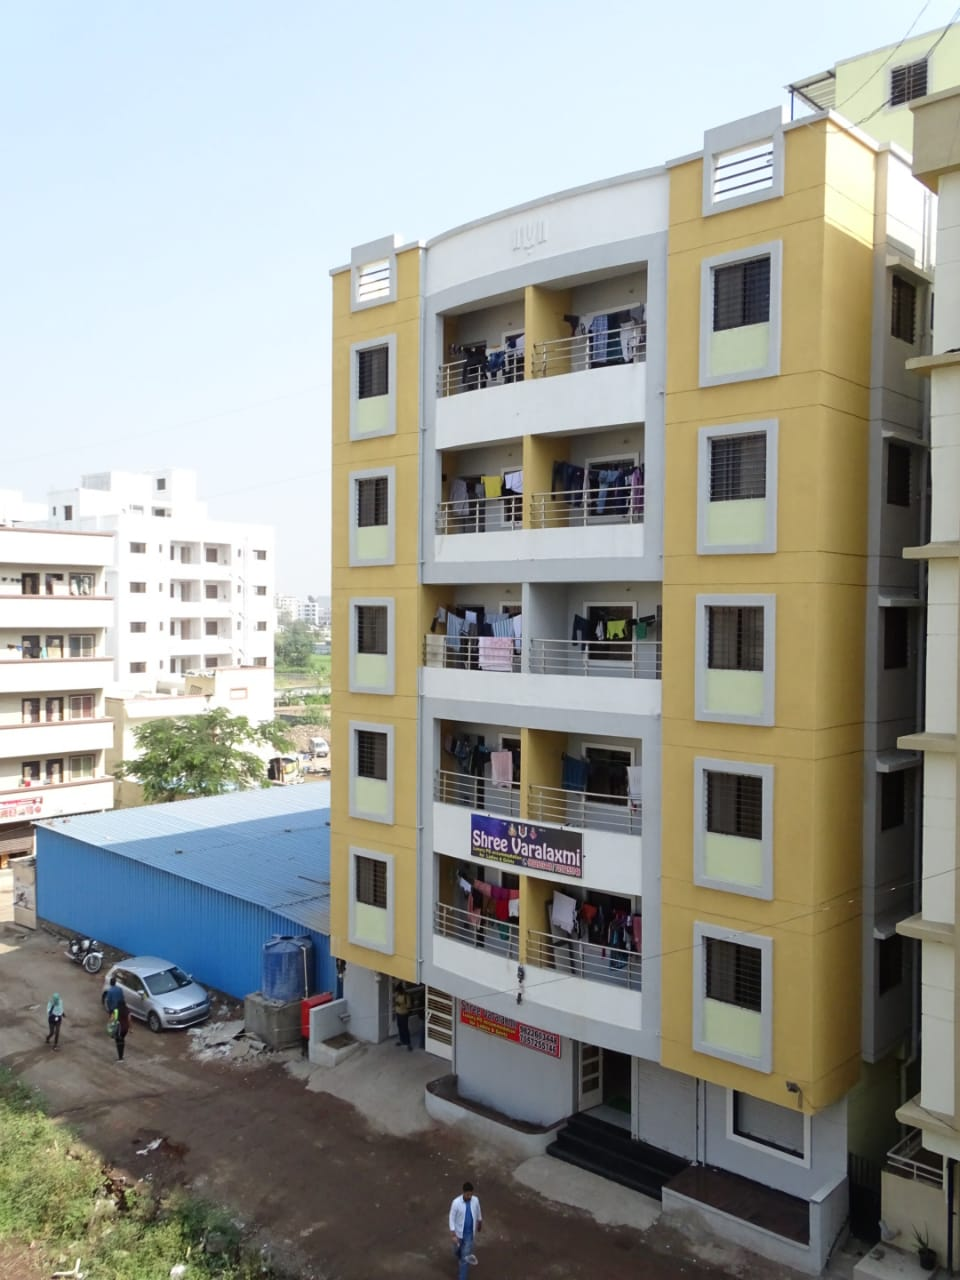 Shree Varalaxmi Pg in Pune